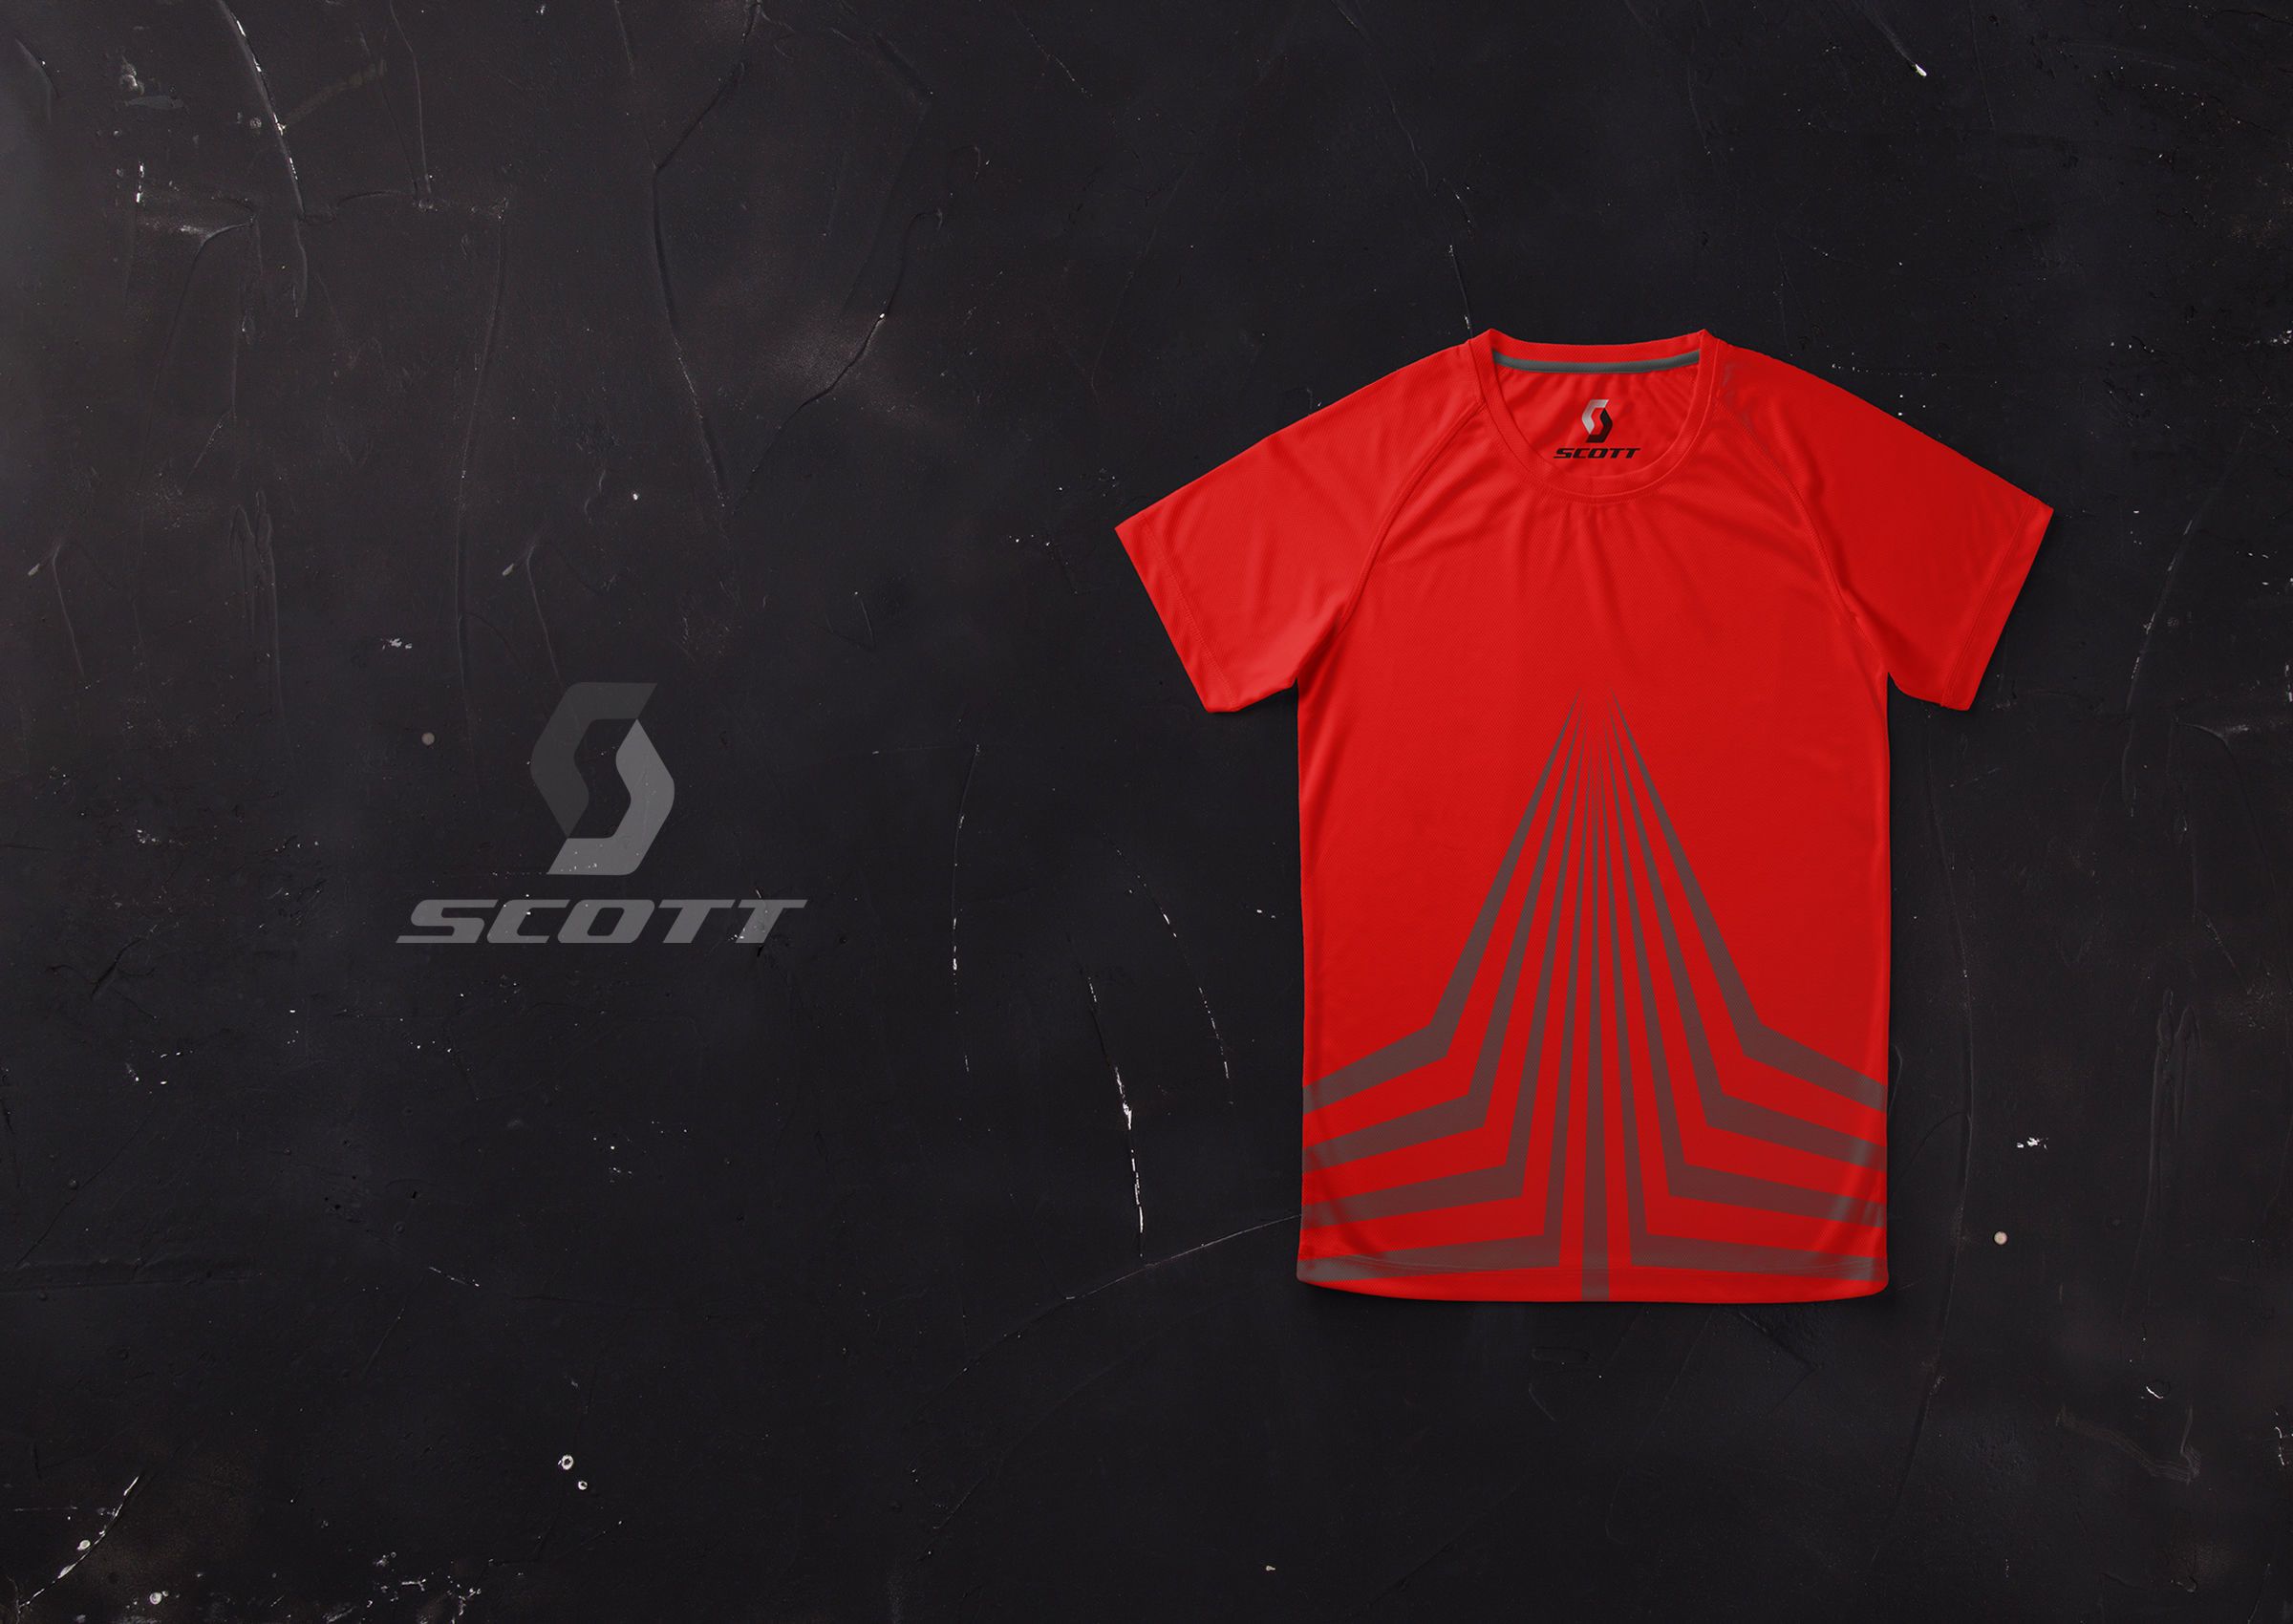 Scott Sports Shirt Designed by Rob Swain